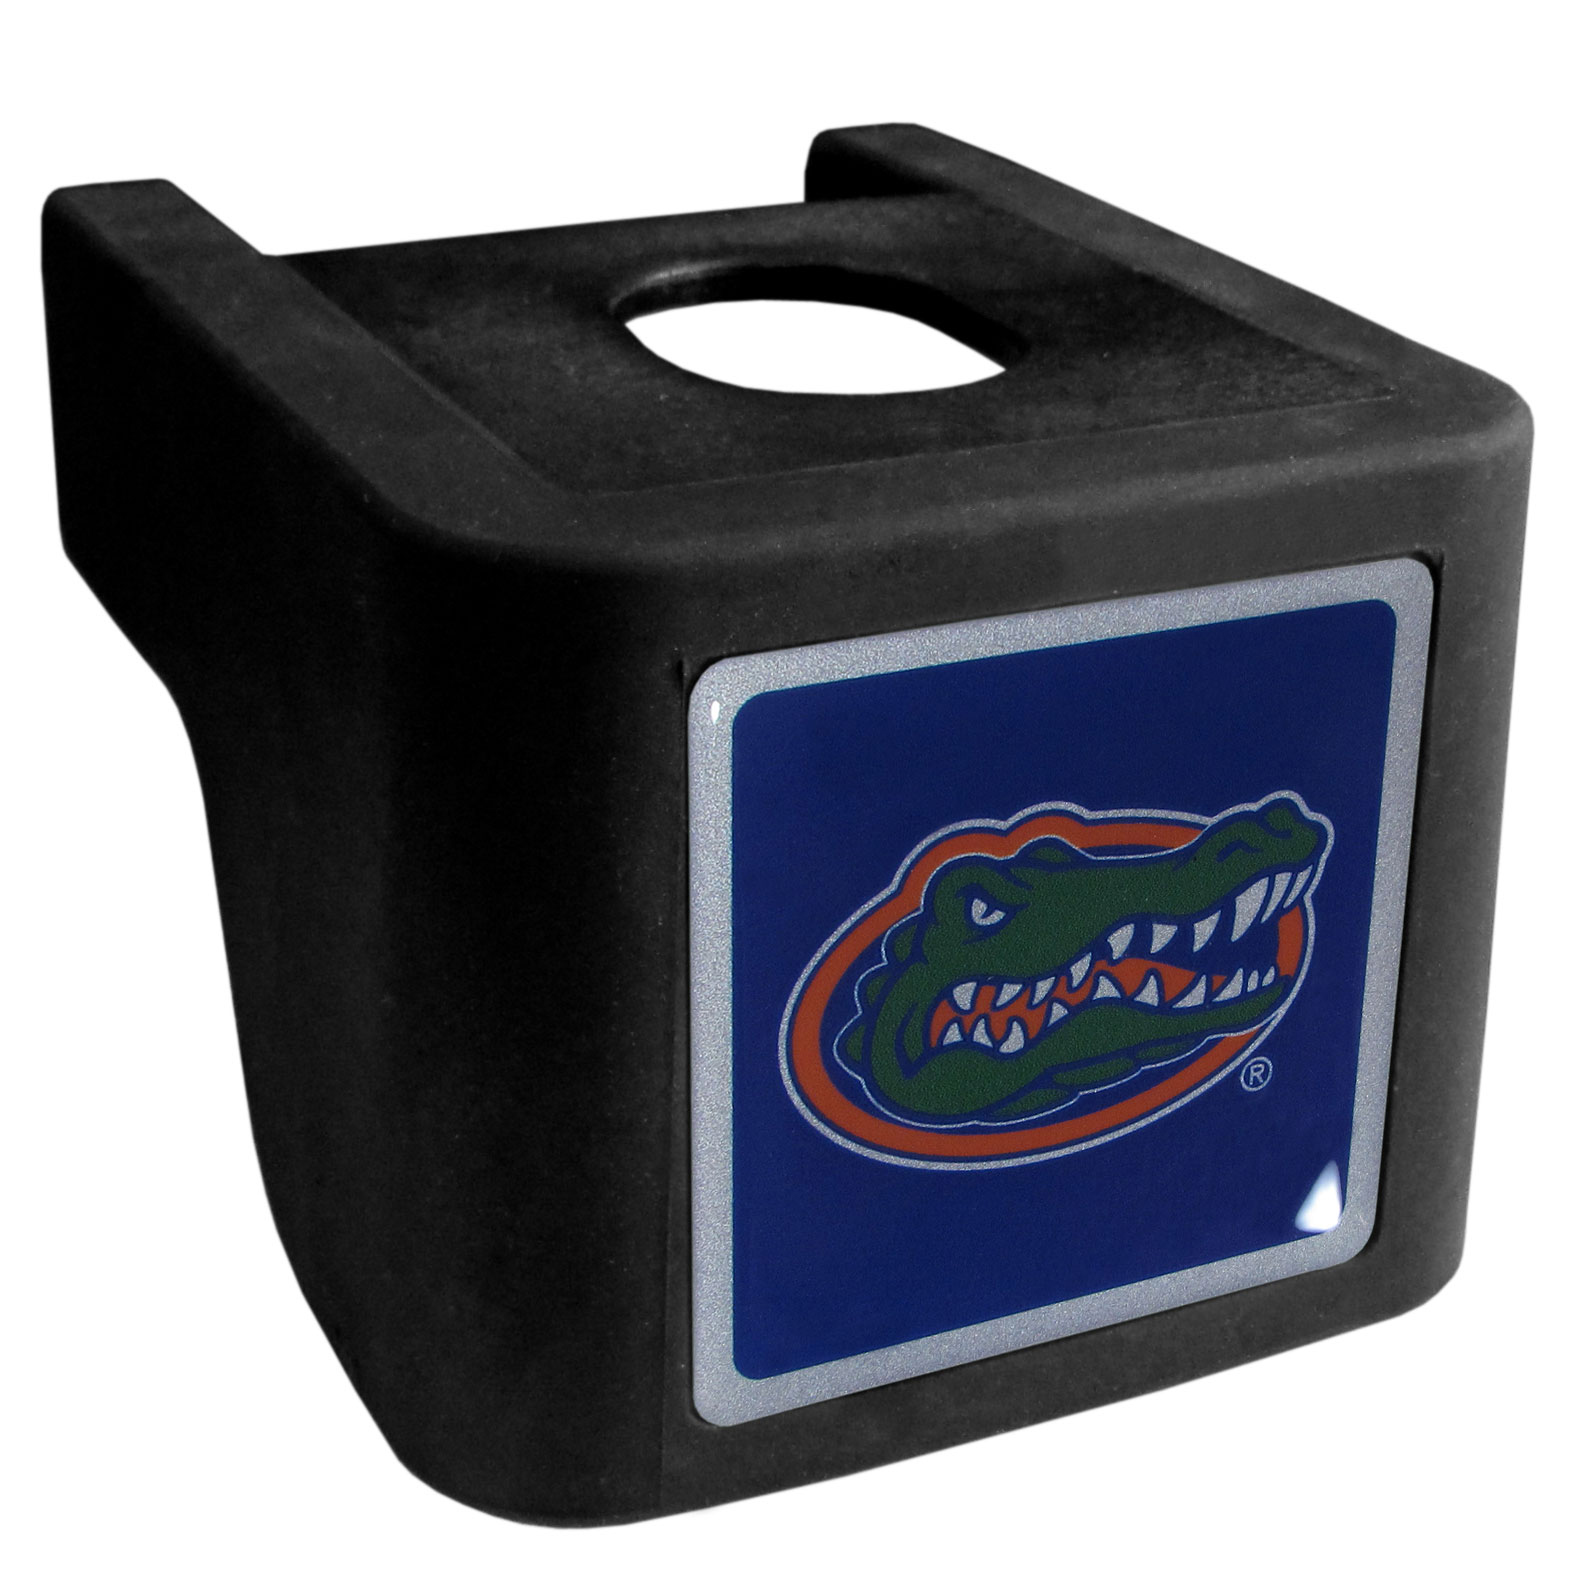 Florida Gators Shin Shield Hitch Cover - This unique hitch cover features a large Florida Gators logo. If you have ever hooked up a trailer or boat your have probably smashed your shins on the ball hitch a few times. This revolutionary shin shield hitch cover provides your much abused shins with the protection they deserve! The tough rubber hitch is rated to work with Class V hitch receivers hauling up to 17,000 gross trailer weight and 1,700 tongue weight allowing you to leave it on while hauling.